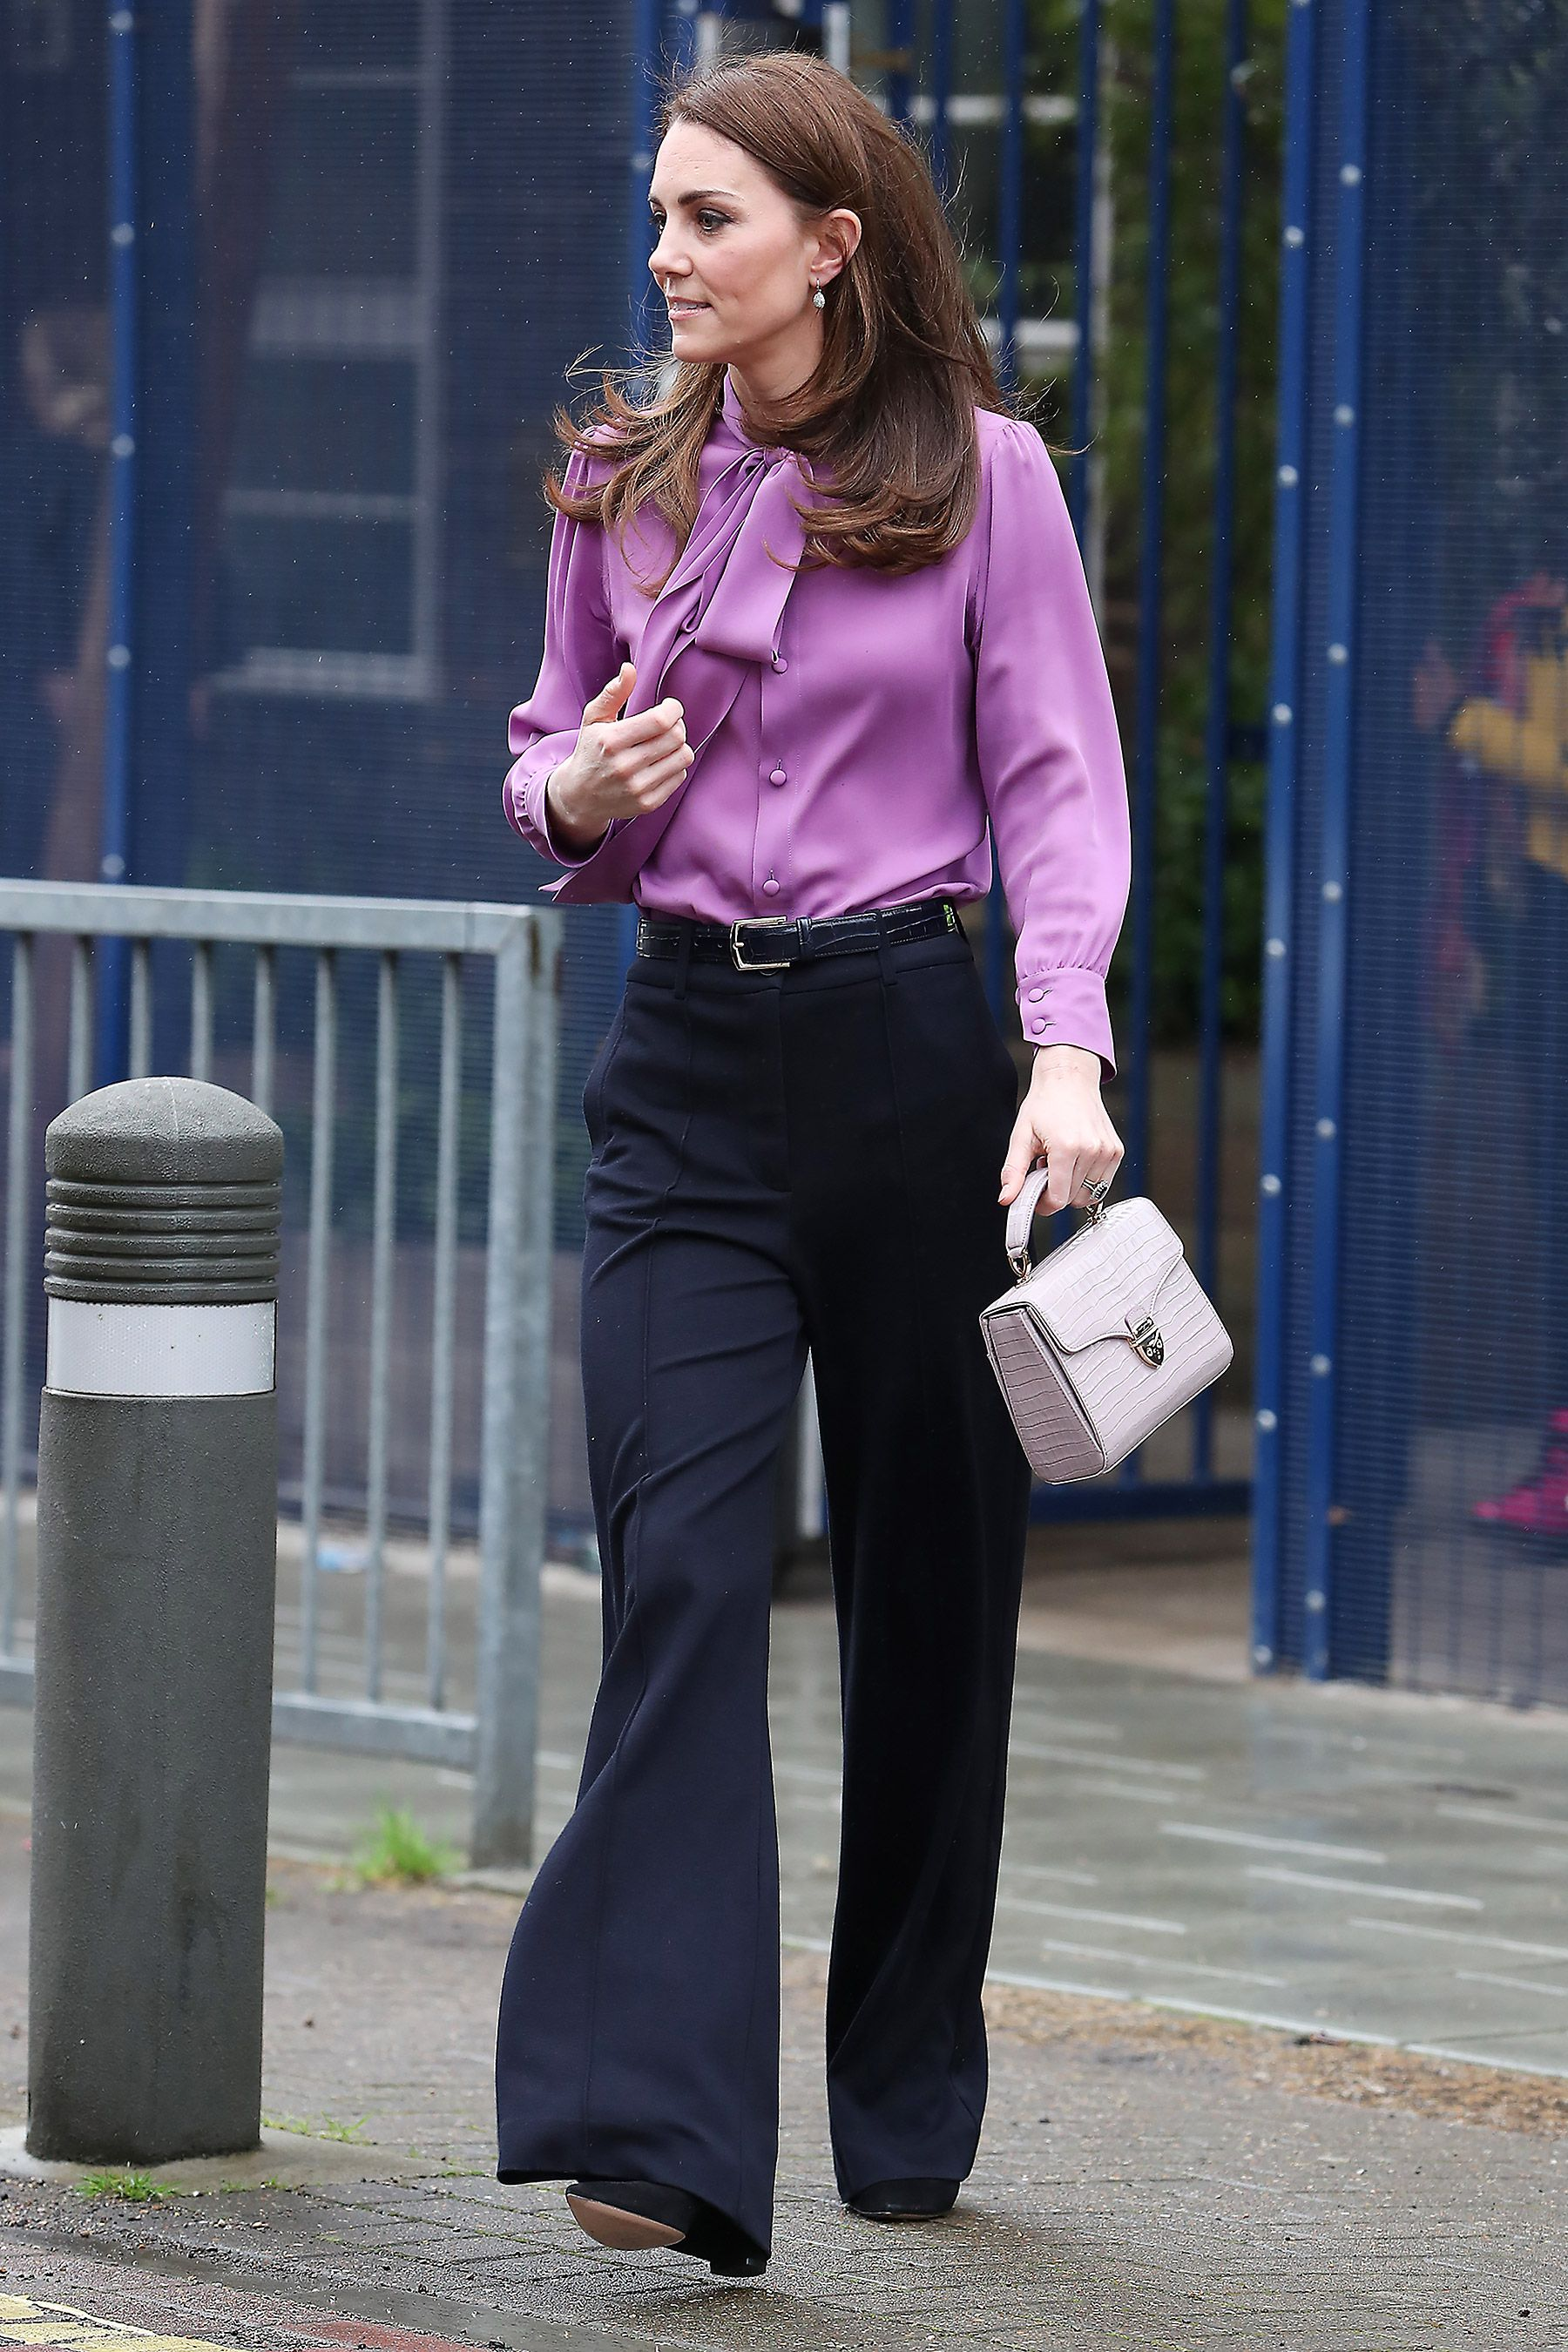 31daf252ef5 Did Kate Middleton Make a Major Fashion Statement by Wearing Her Purple  Gucci Blouse Backwards?